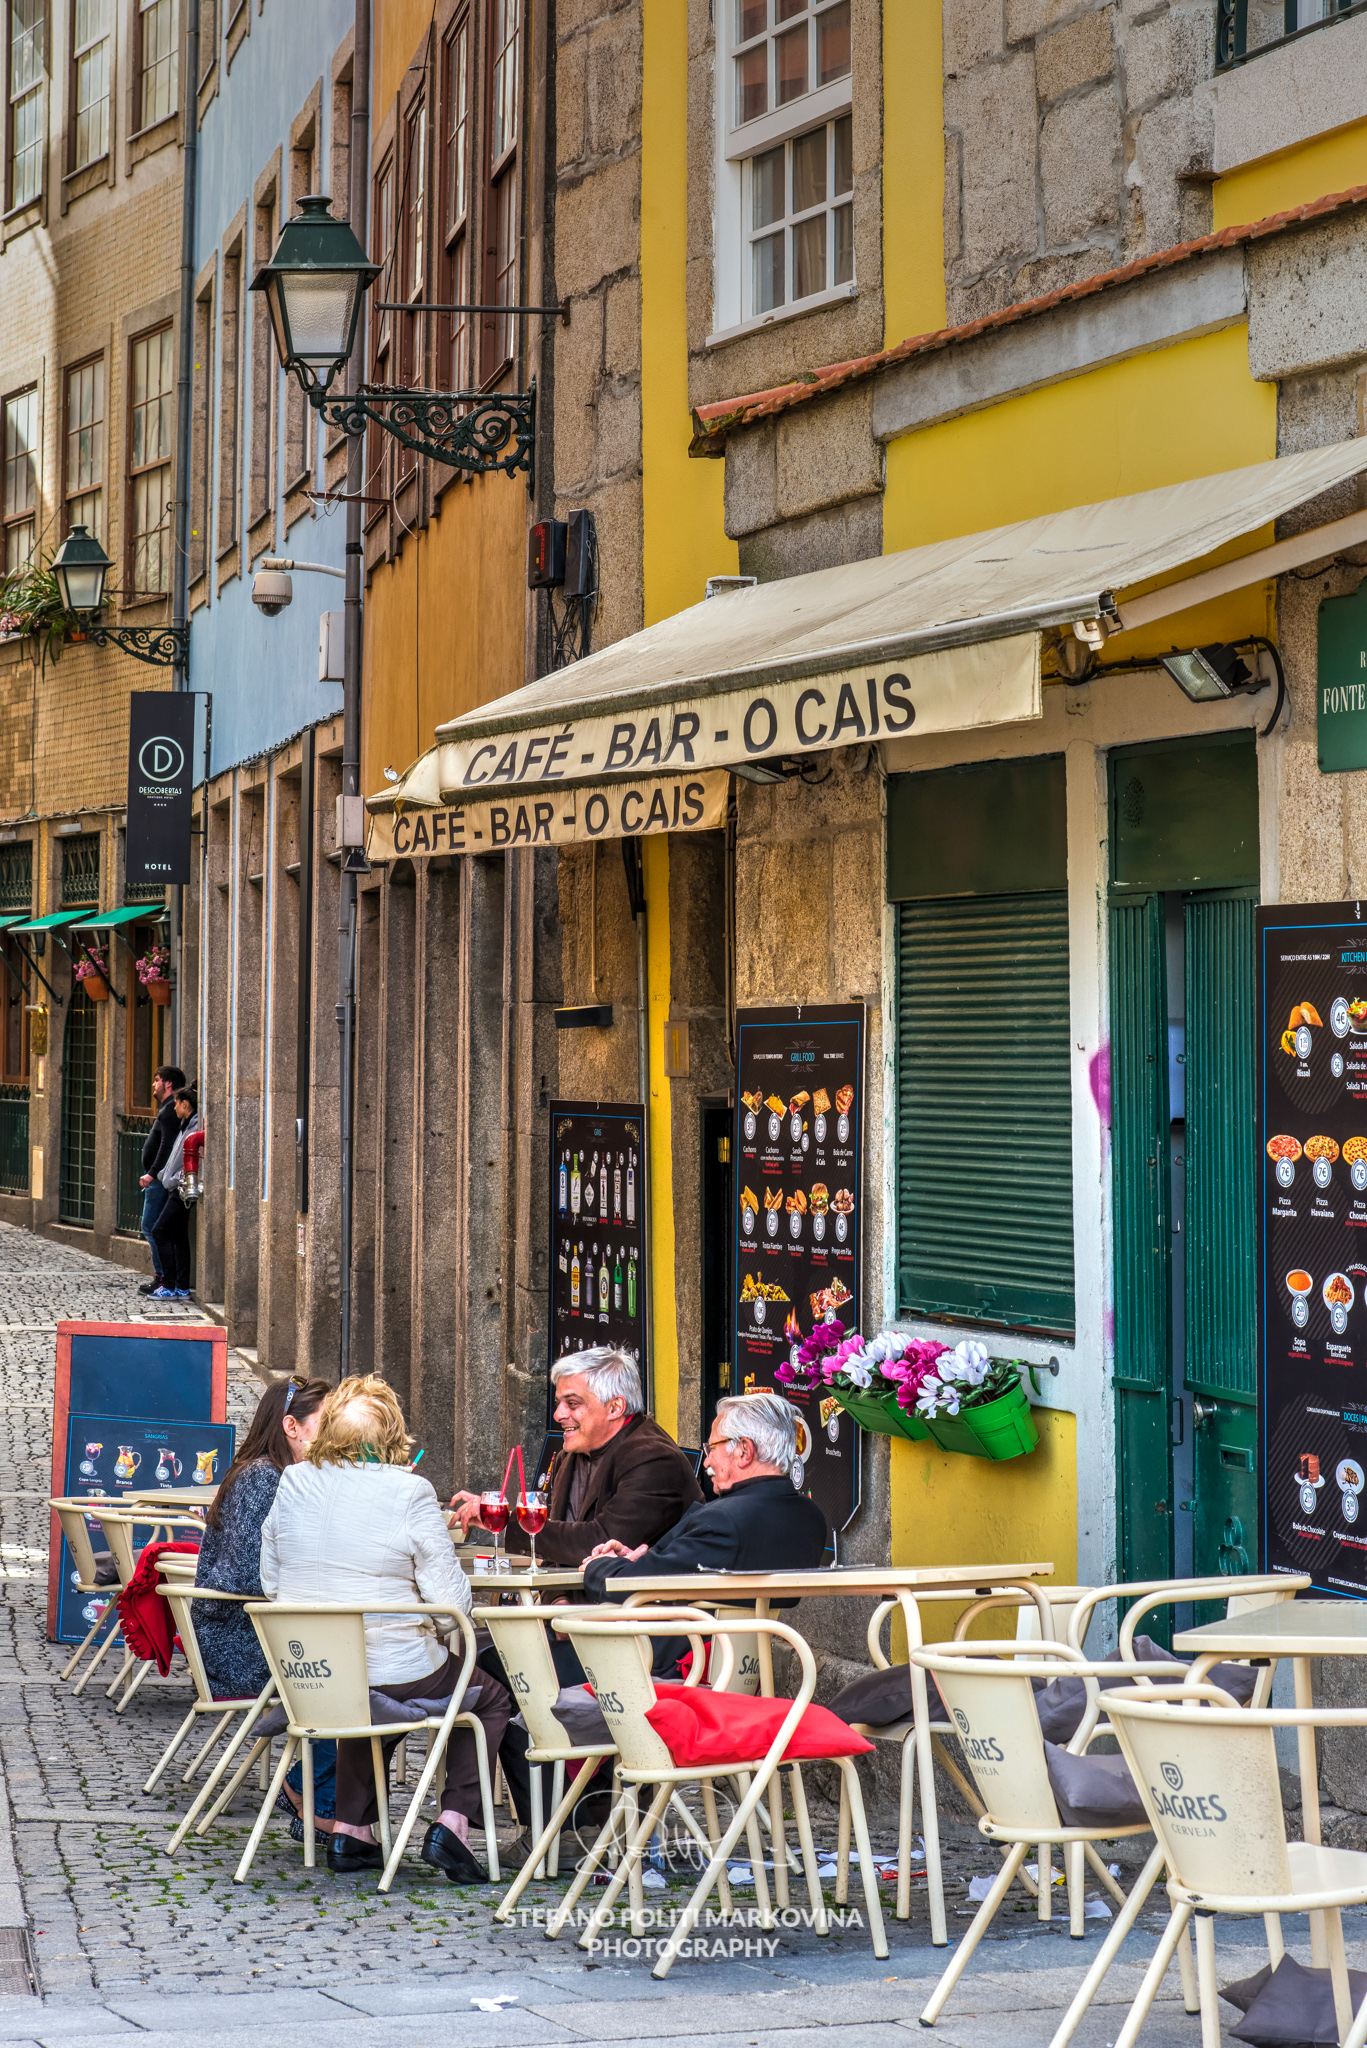 Cafe bar in Ribeira district, Porto, Portugal